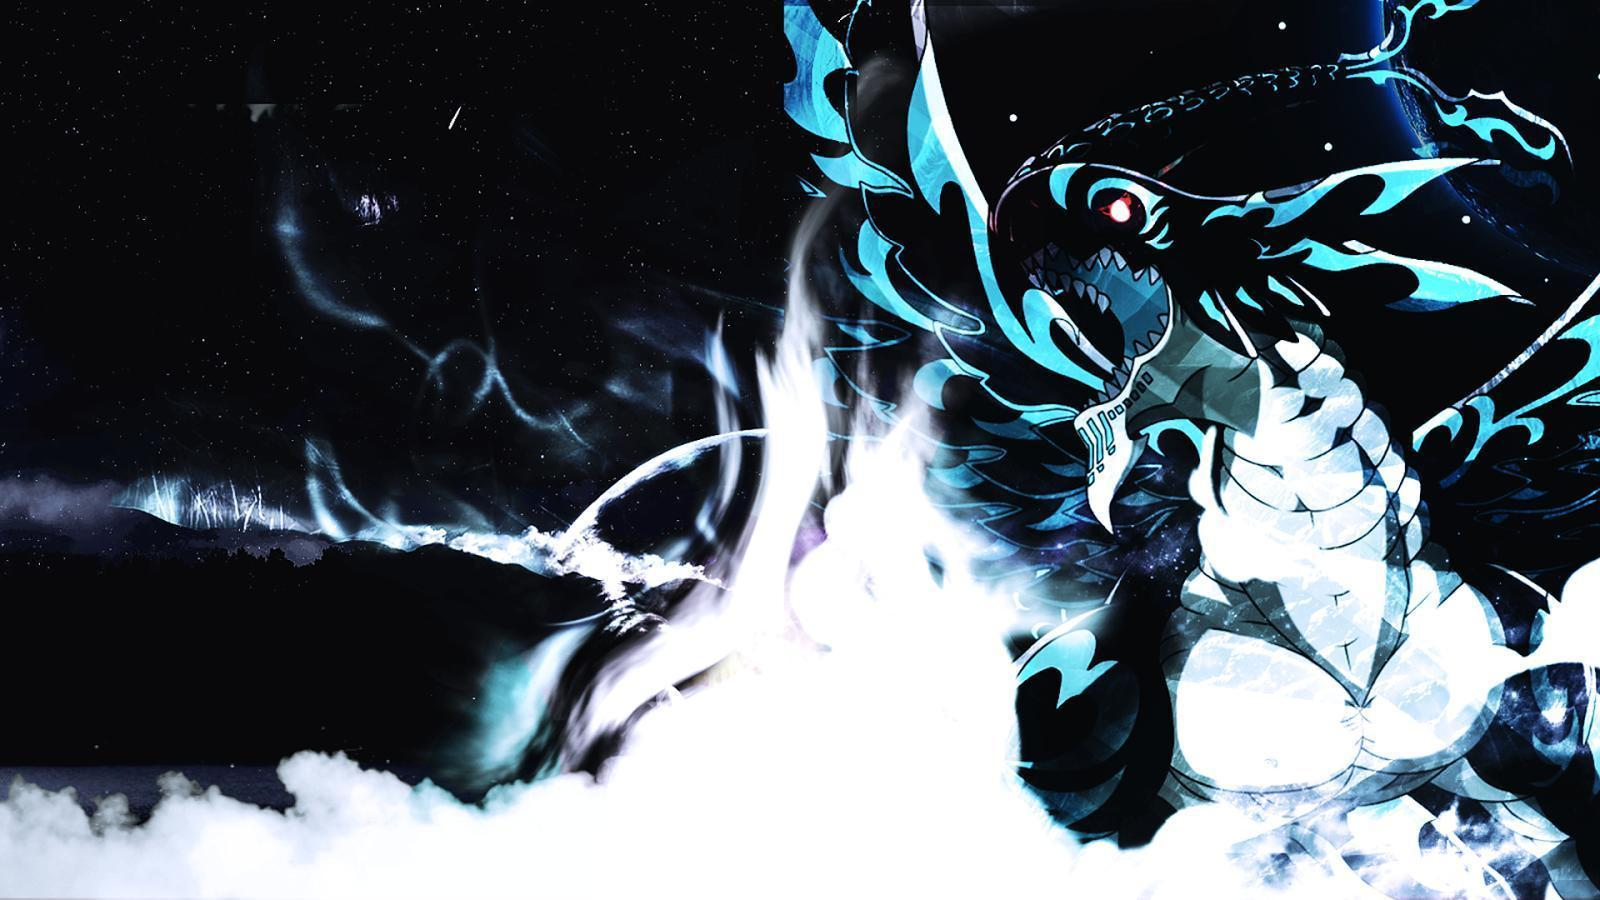 epic anime wallpaper wide - photo #28